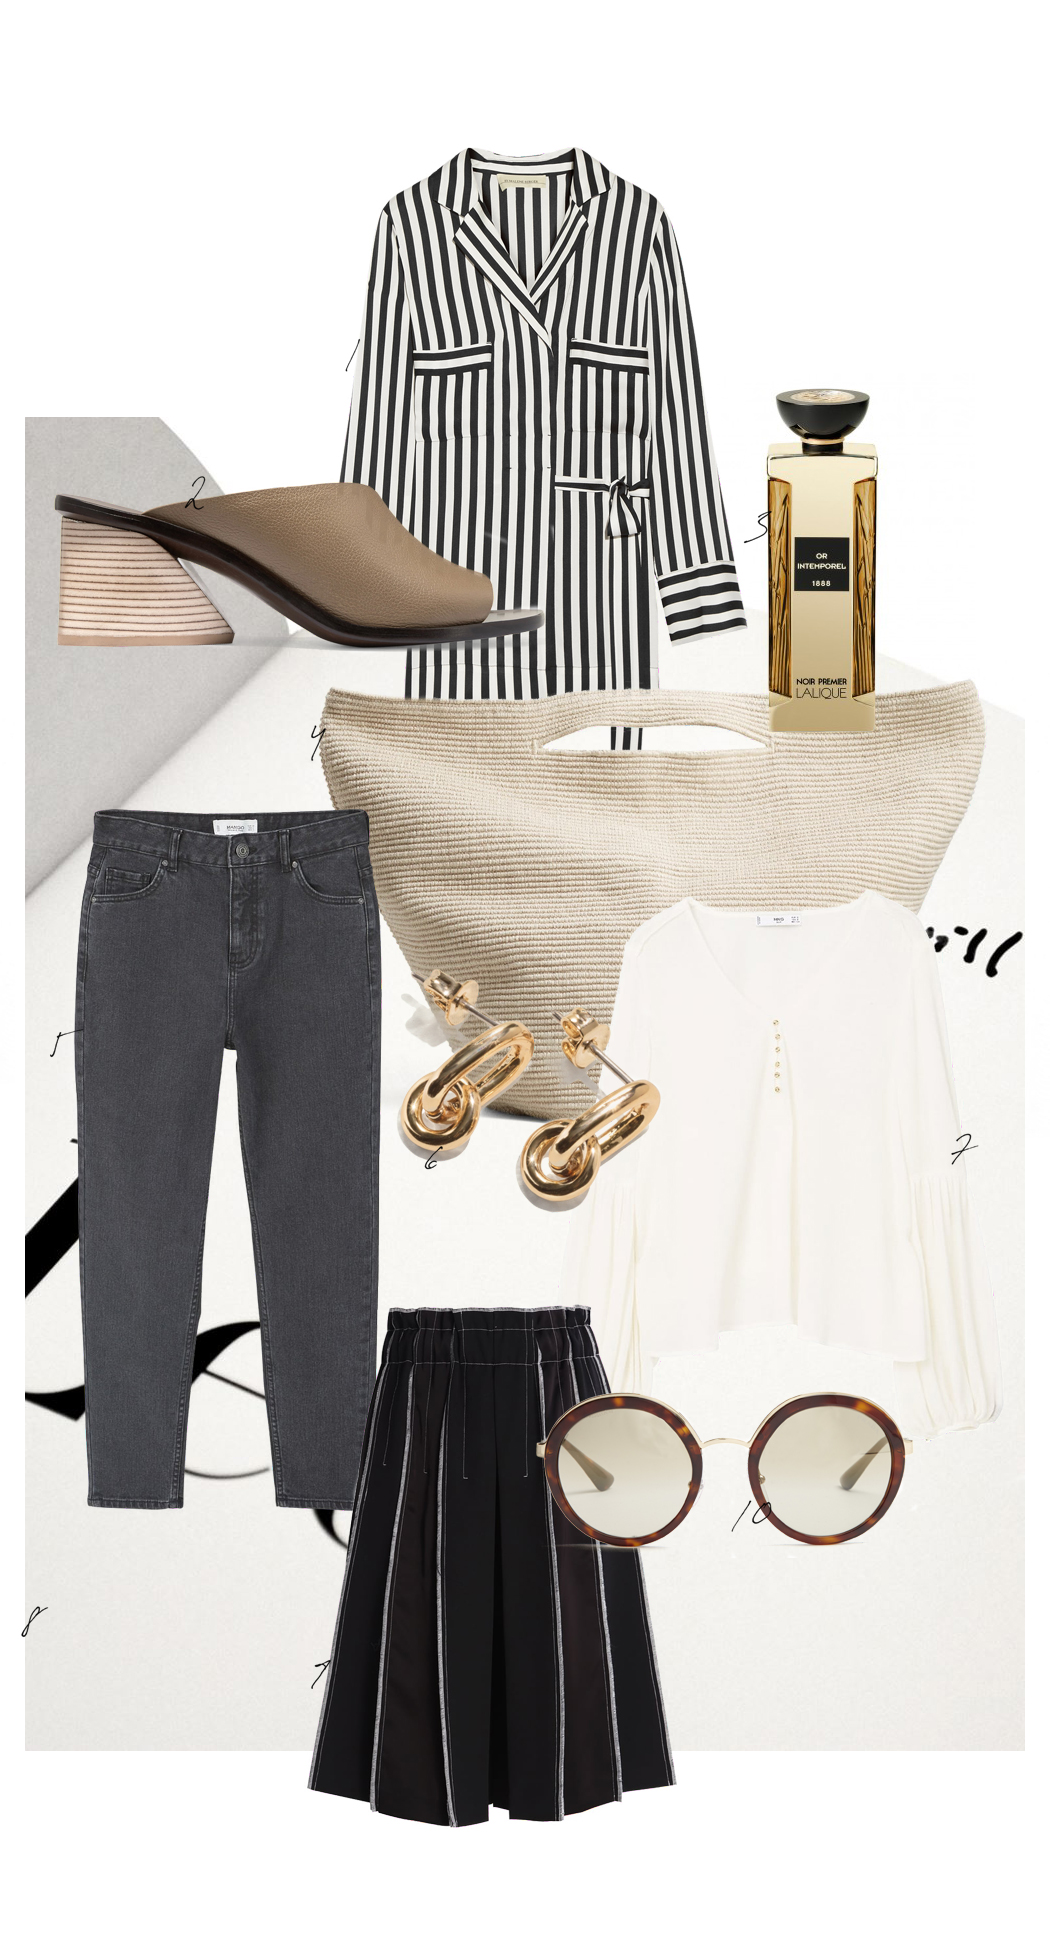 The Dashing Striped Spring Summer Style